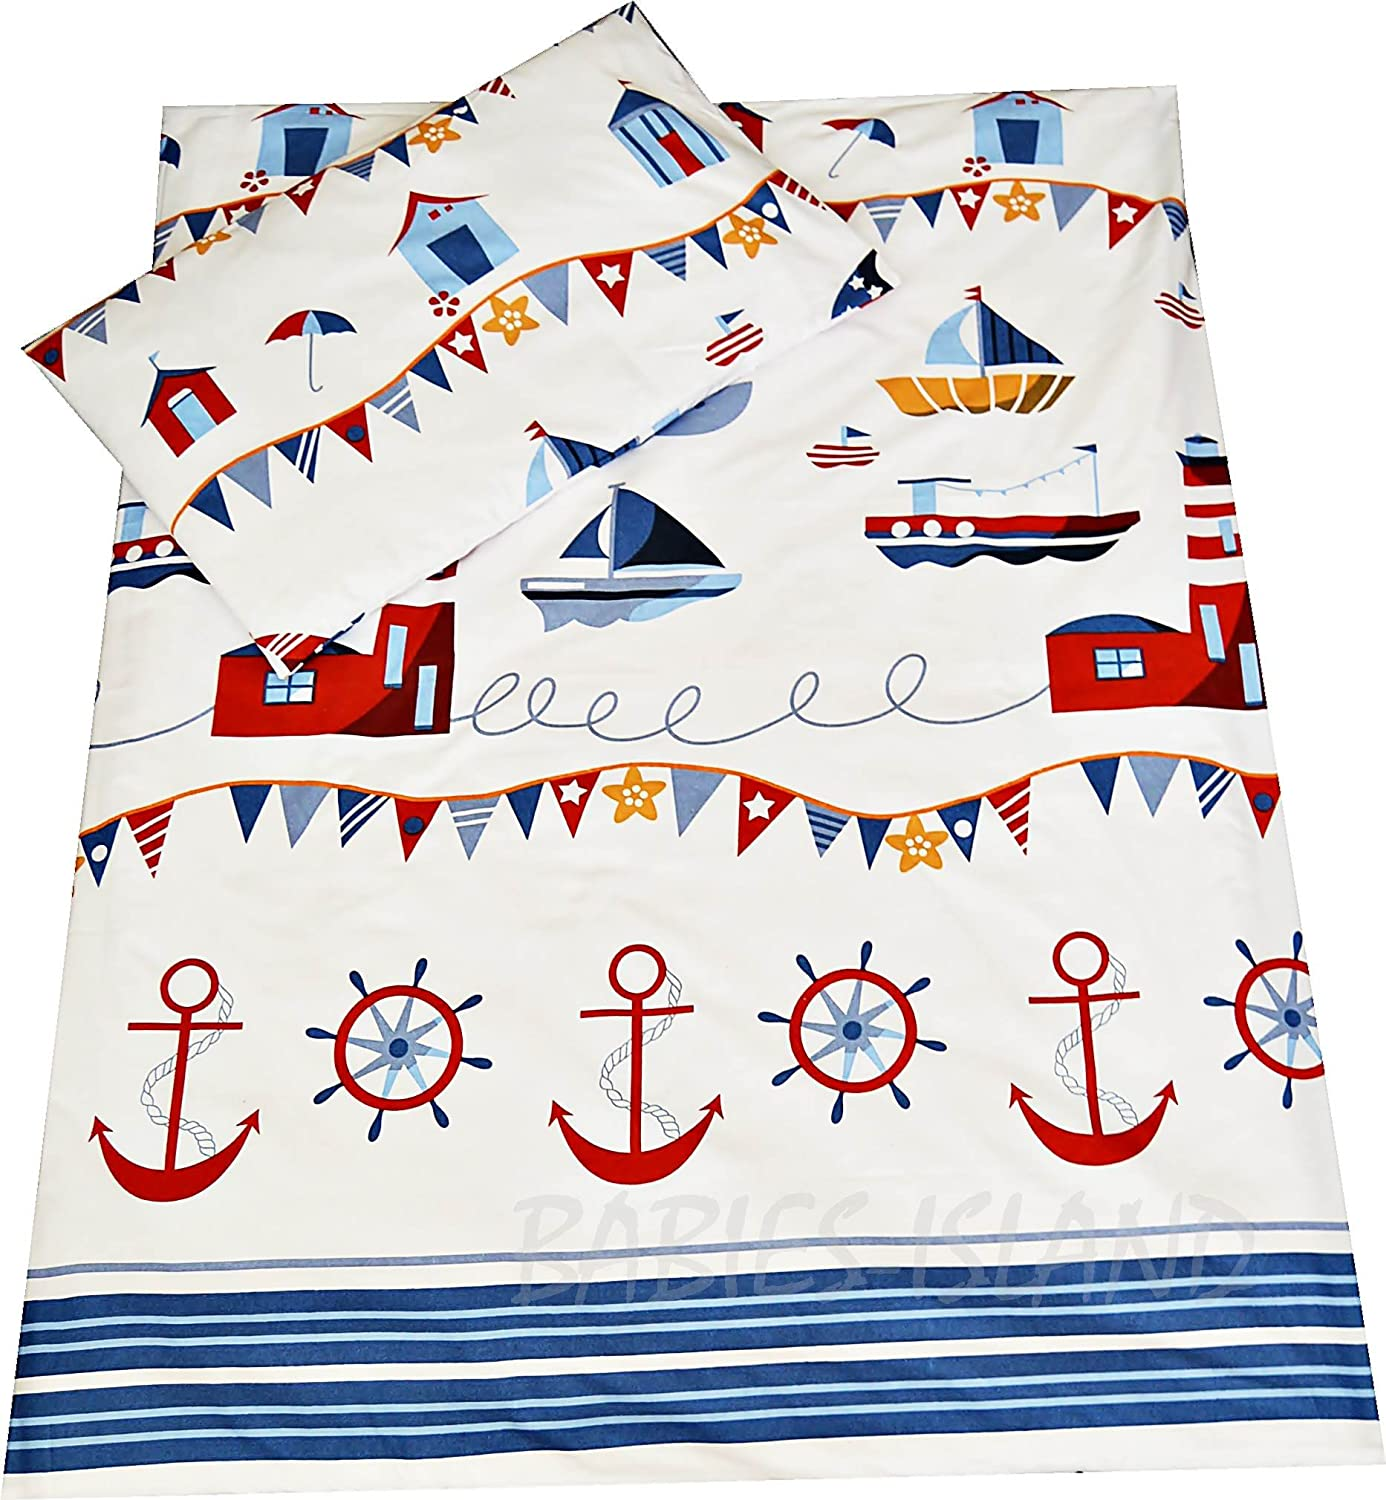 Babies-Island A 2 Piece Bedding Set Pillowcase+Duvet Cover For Baby Toddler To Fit Cot/Cot Bed - MARINA, SEA, LIGHTHOUSE RED (90X120cm)